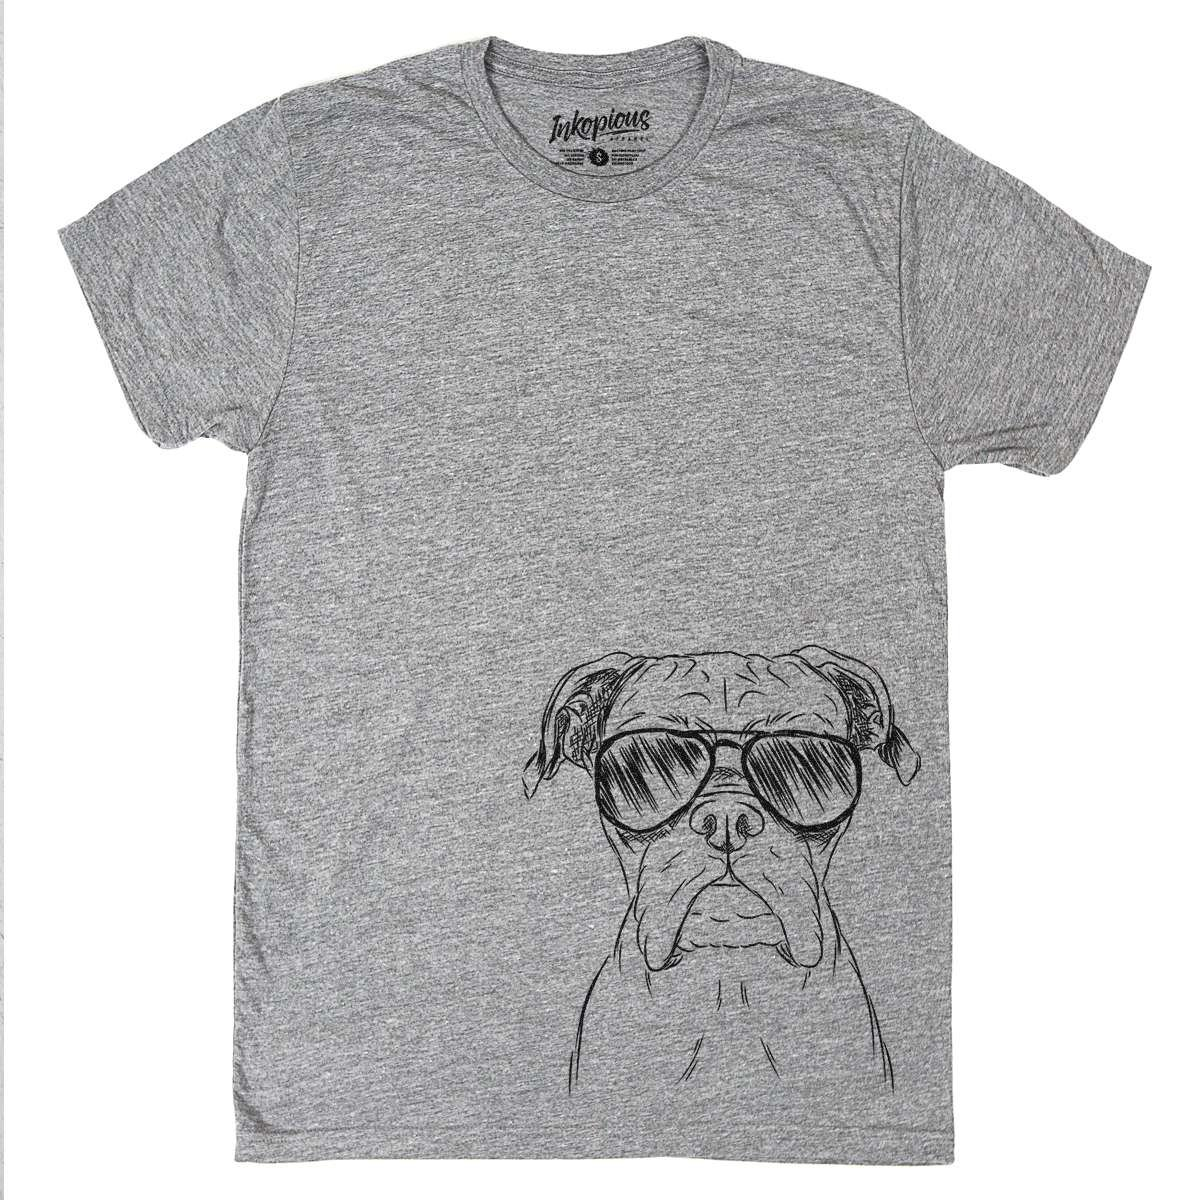 Inkopious Axel The Boxer Dog Men's/Women's Triblend T-Shirt Unisex Crewneck Xtra Large Grey